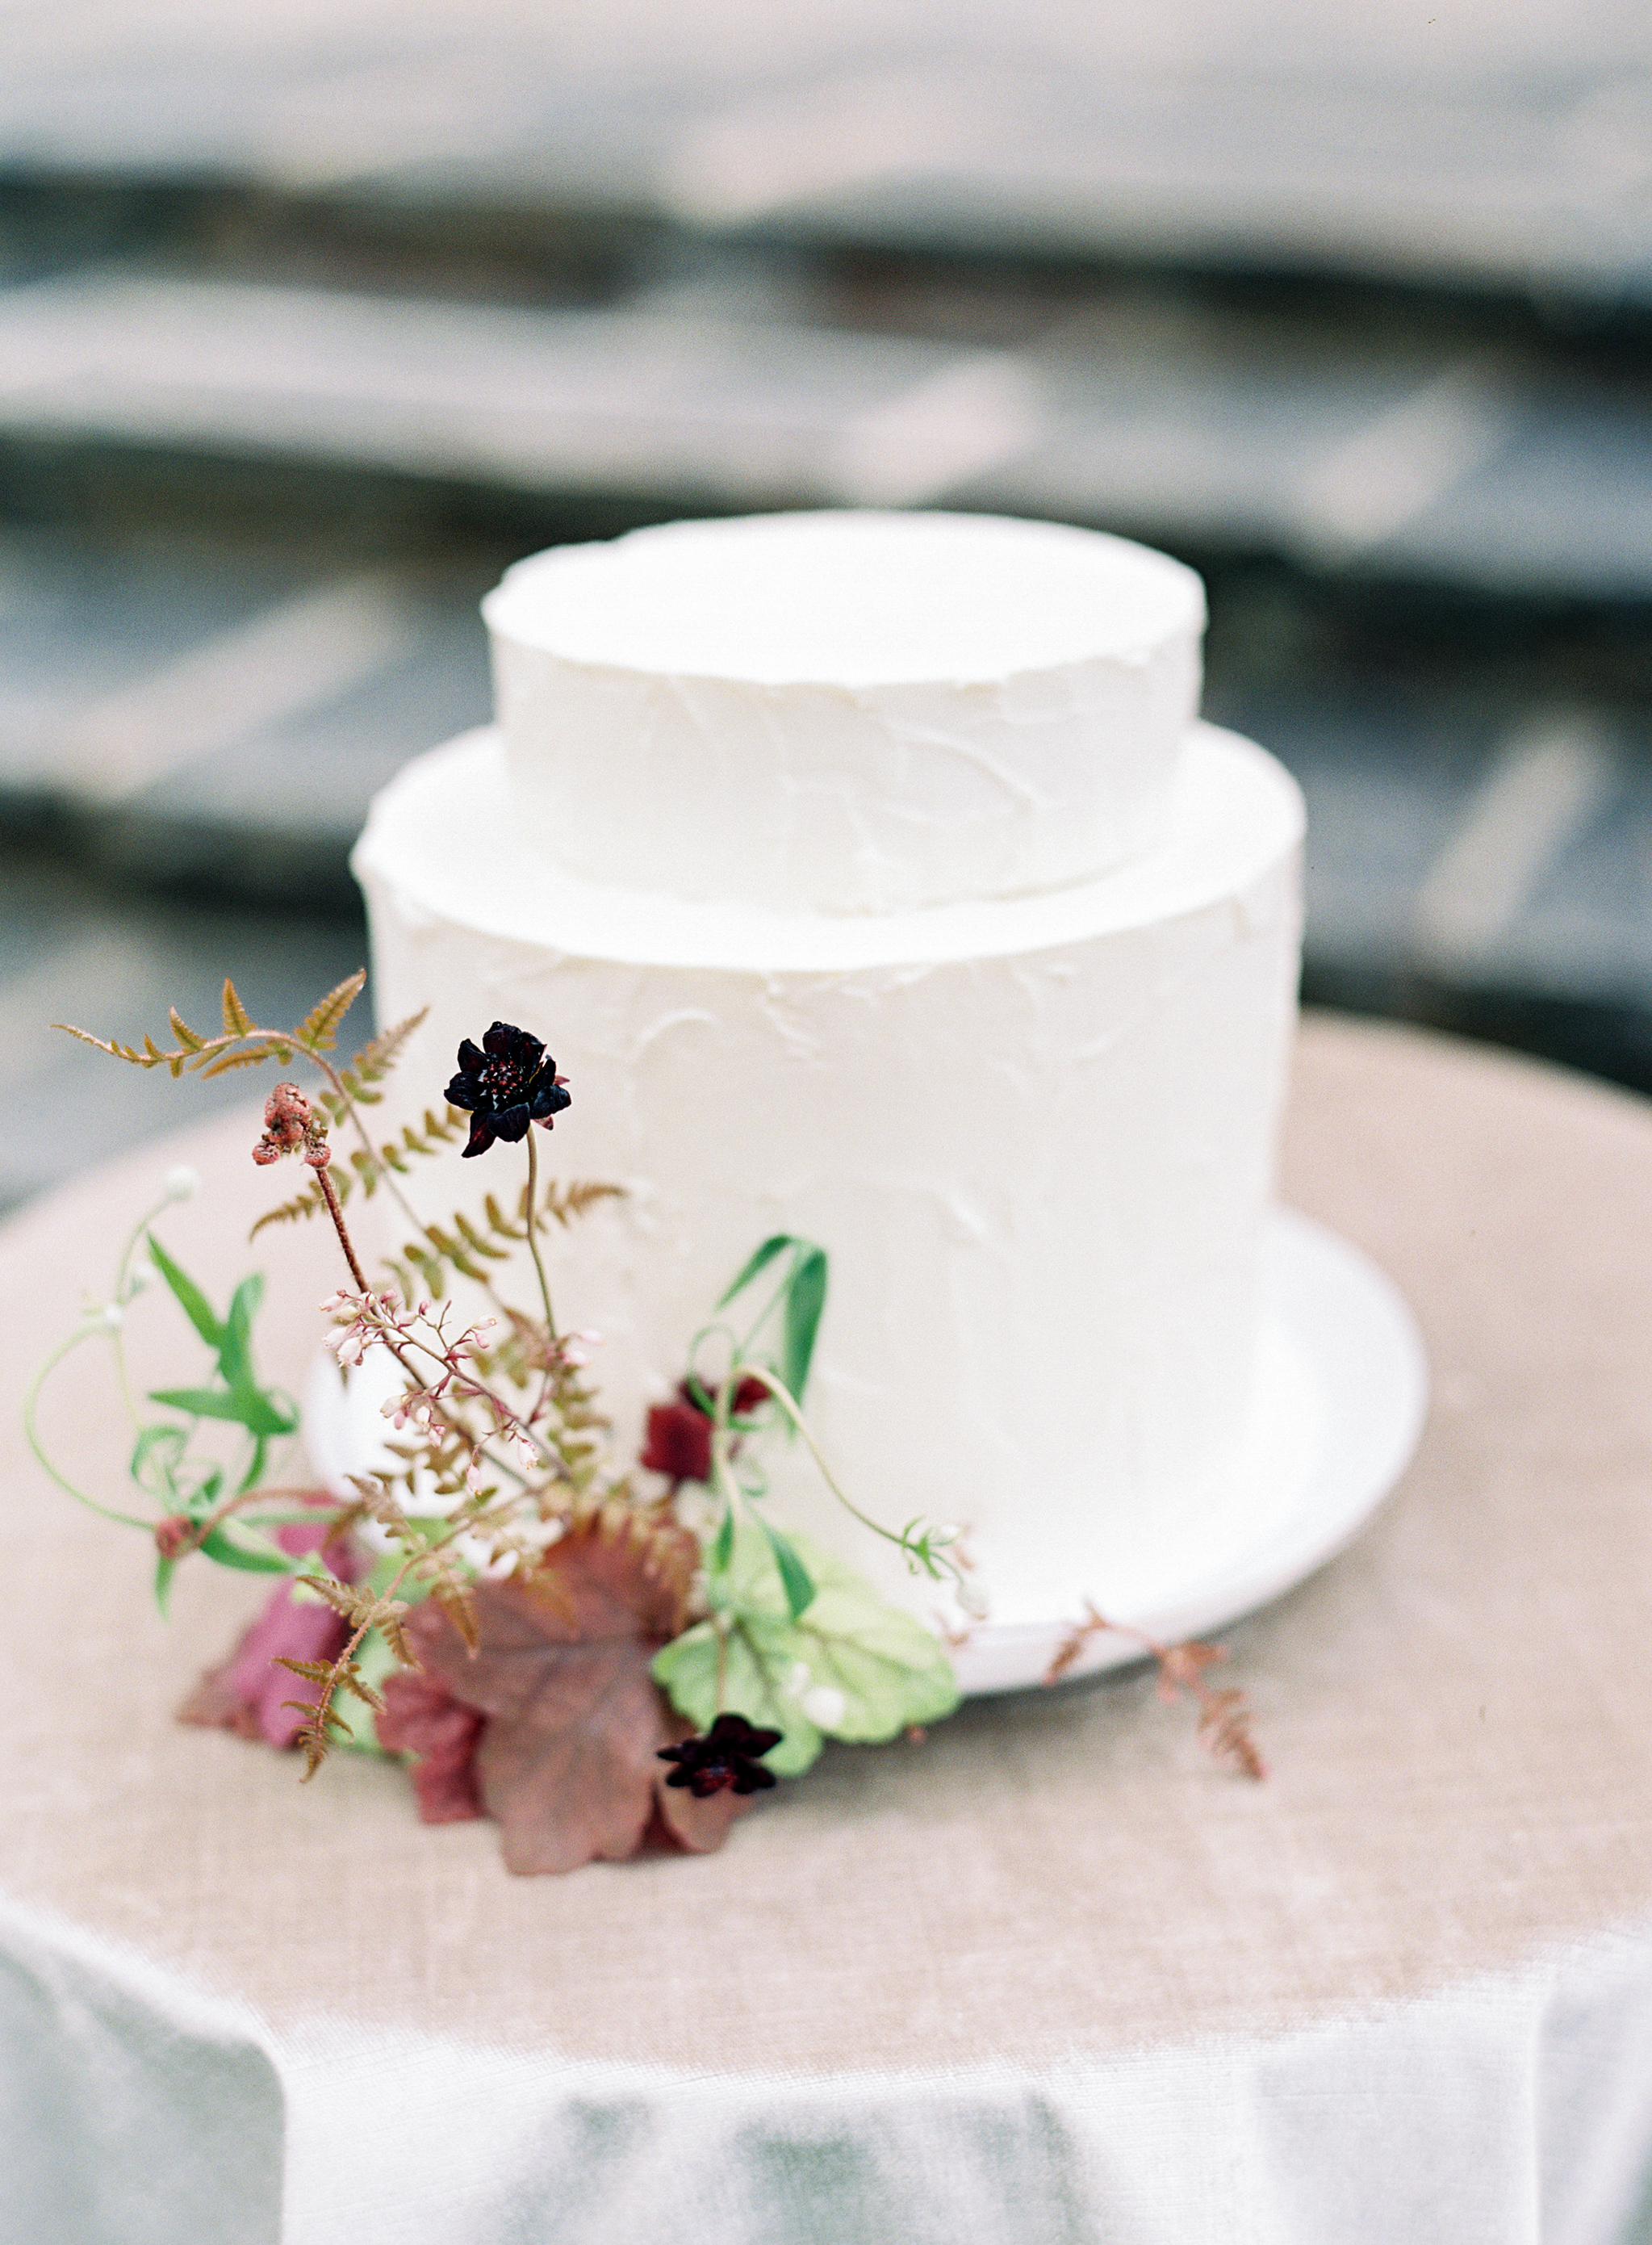 Leesburg VA Florist Wild Green Yonder - Rust Manor Wedding Cake Flowers